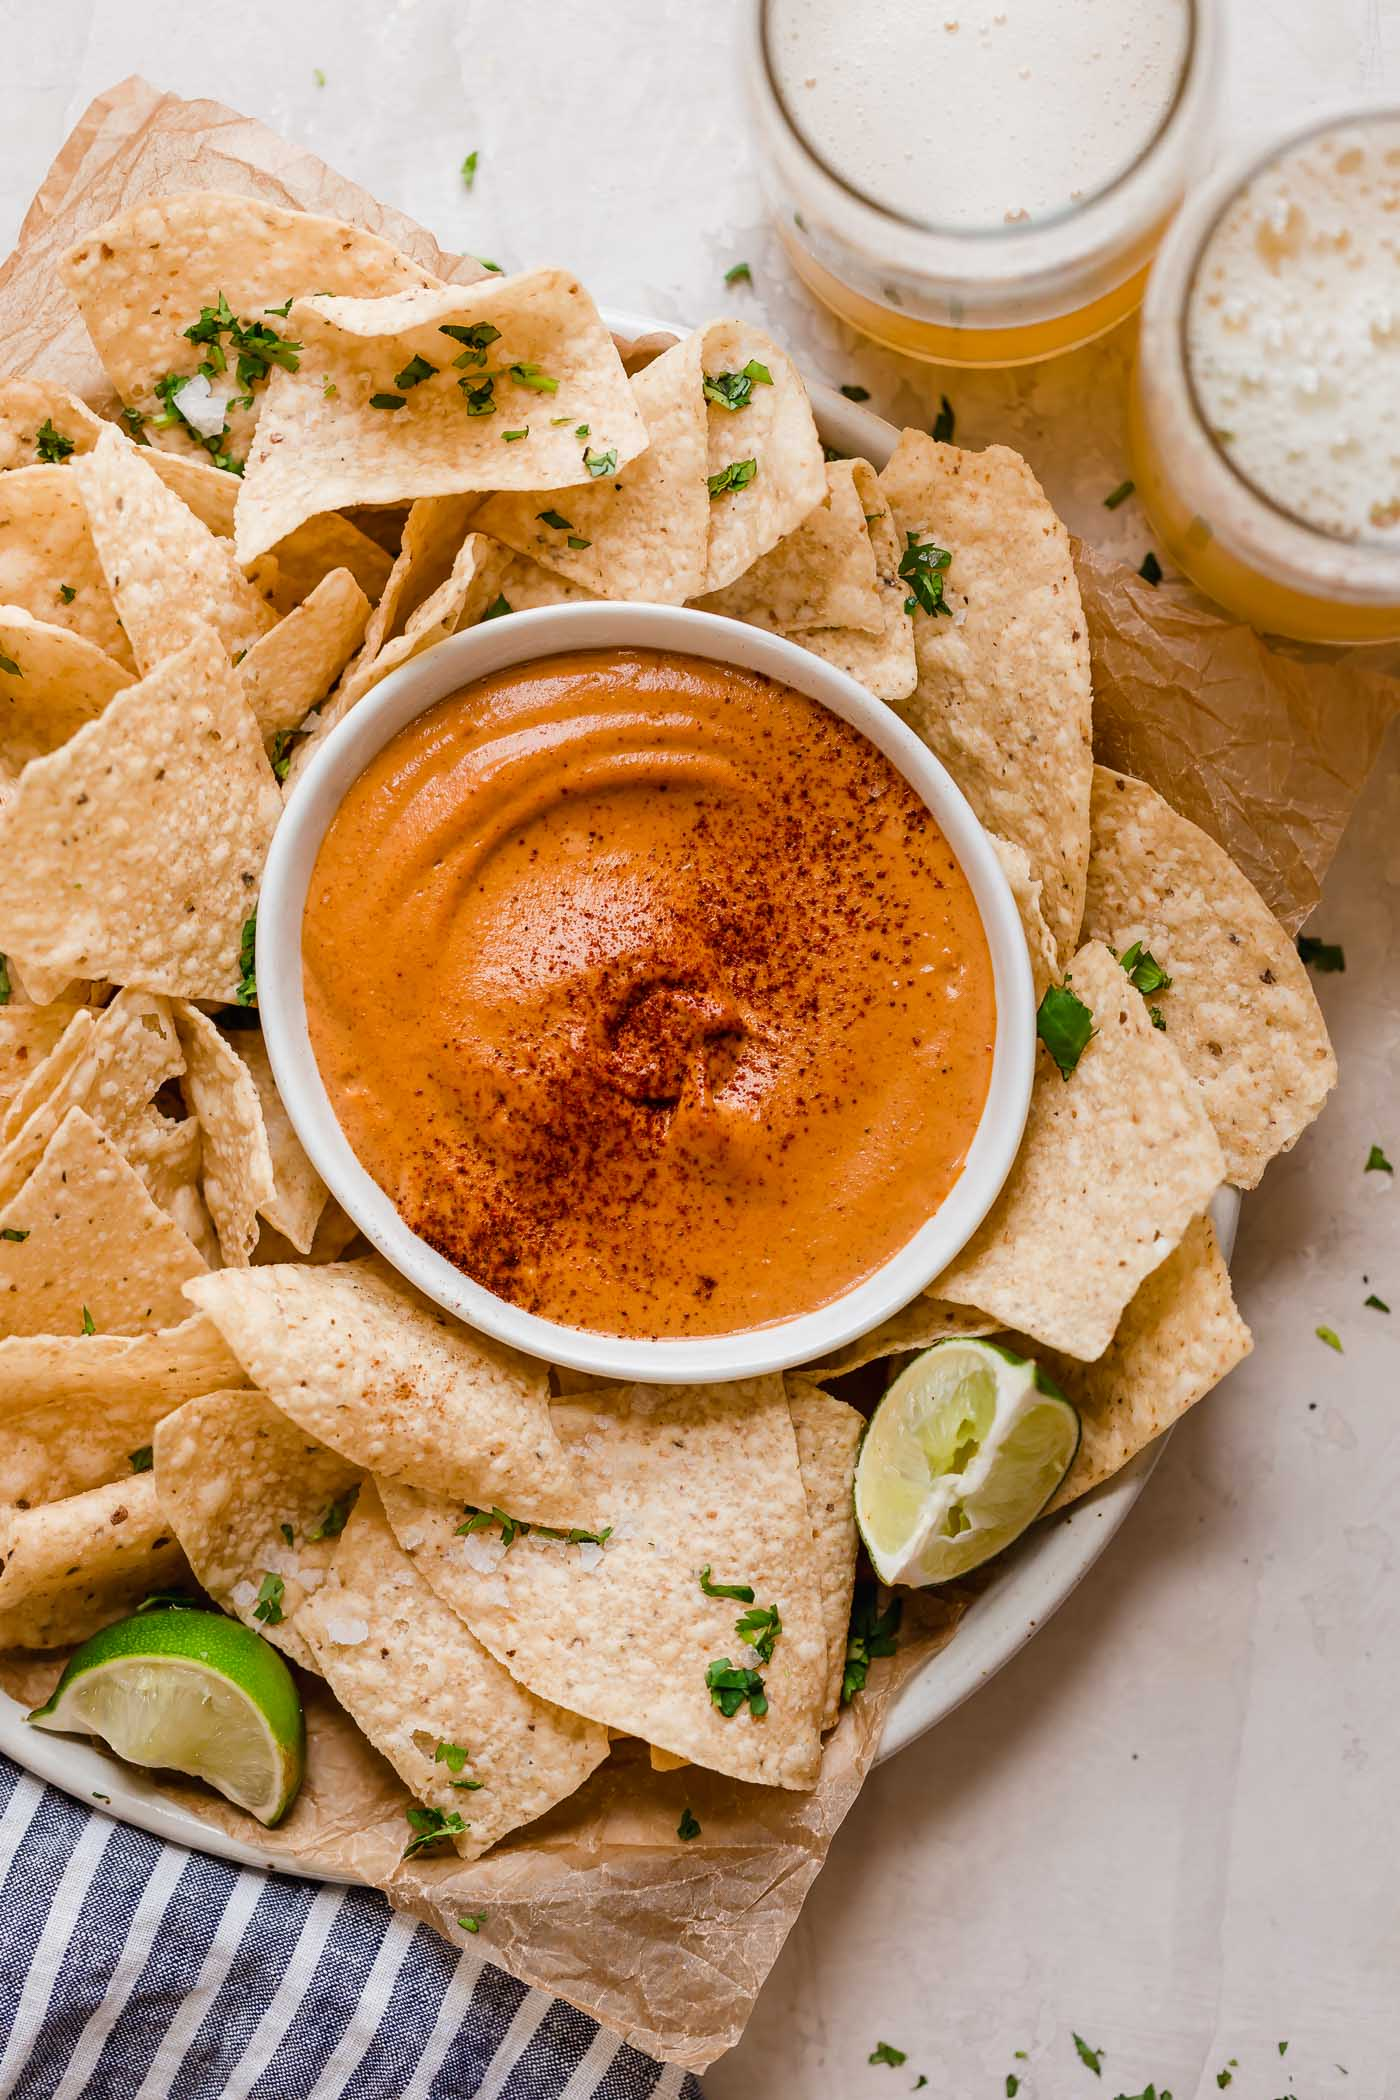 smoky chipotle cashew queso! an easy vegan queso recipe made with cashews, chipotle peppers, spices, & lime juice! the perfect healthy game day snack, smoky chipotle cashew queso will be the hit of your next game day party! #playswellwithbutter #cashewqueso #veganqueso #easyveganrecipes #vegansnack #gamedaysnacks #gamedayappetizer #gamedayfood #healthysnack